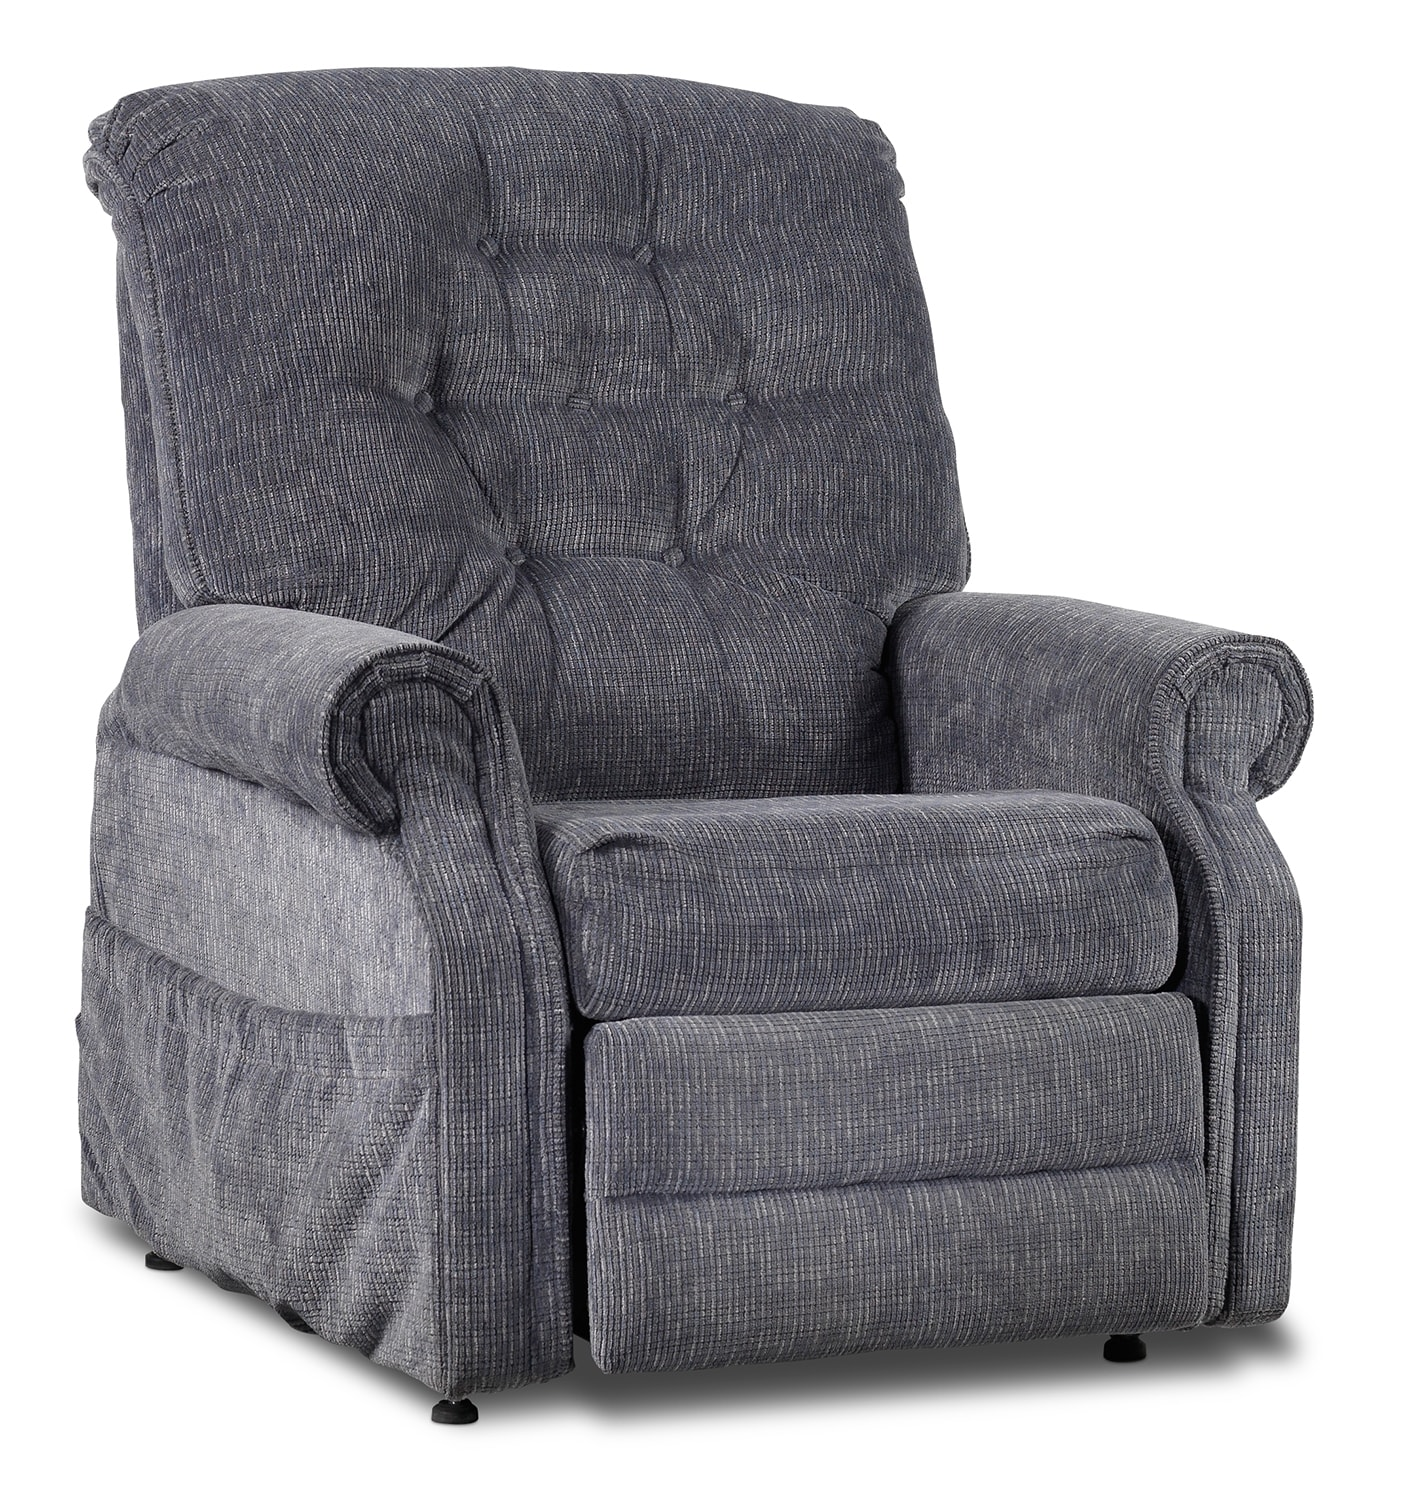 Living Room Furniture - Boost Power Lift Recliner - Slate Grey